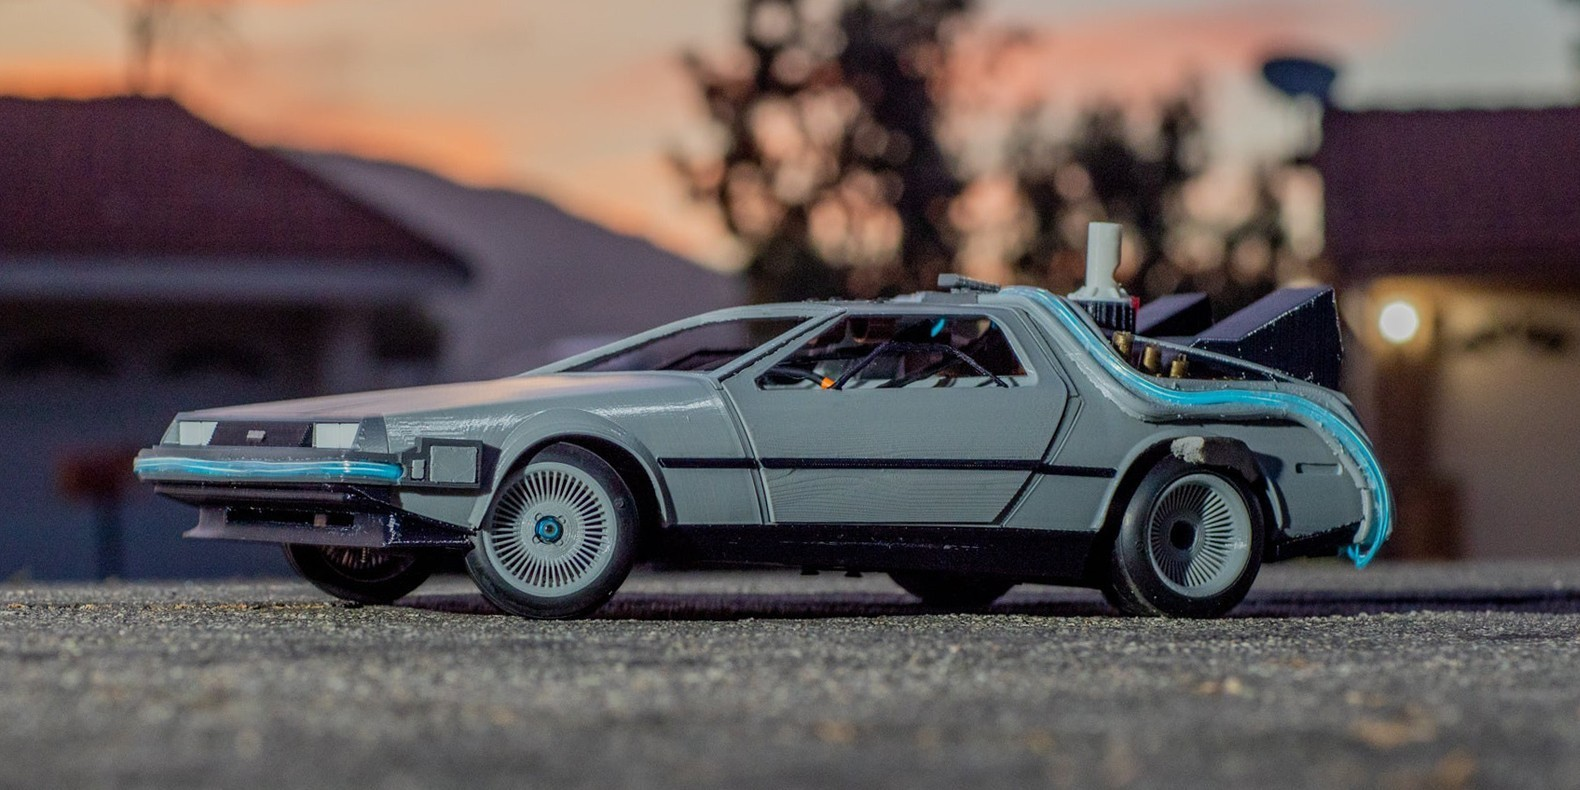 Delorean DMC-12/BTTF Time Machine 3D Printed RC Car